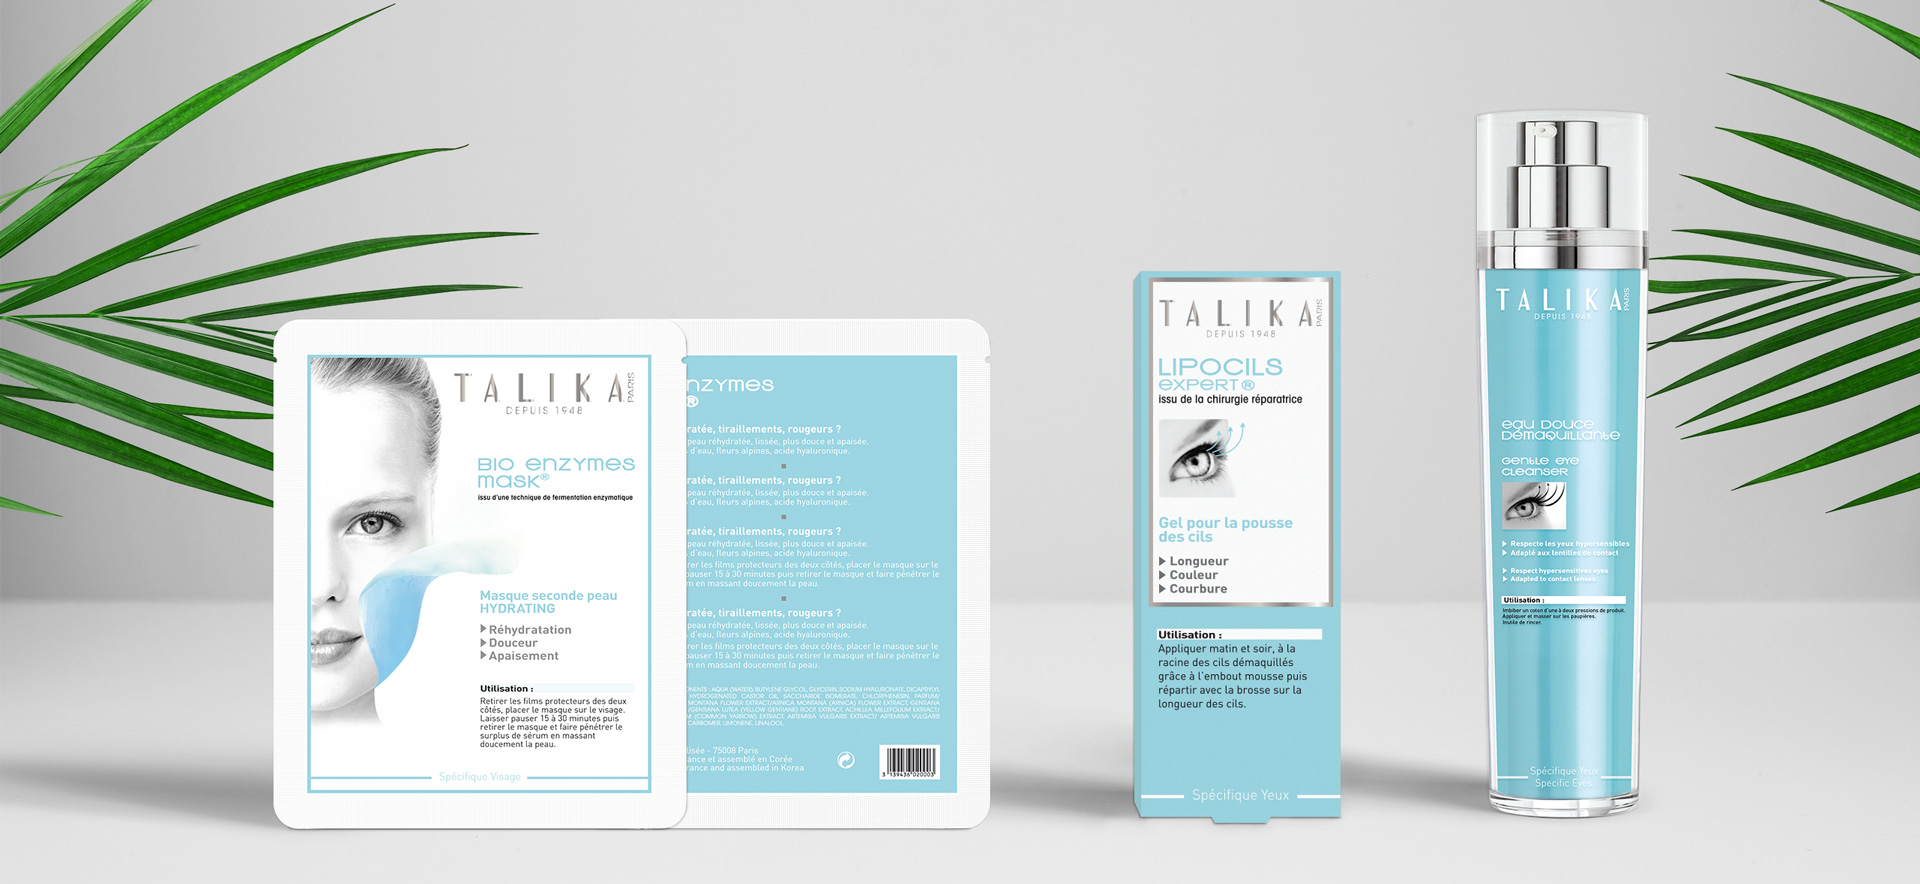 talika-packaging